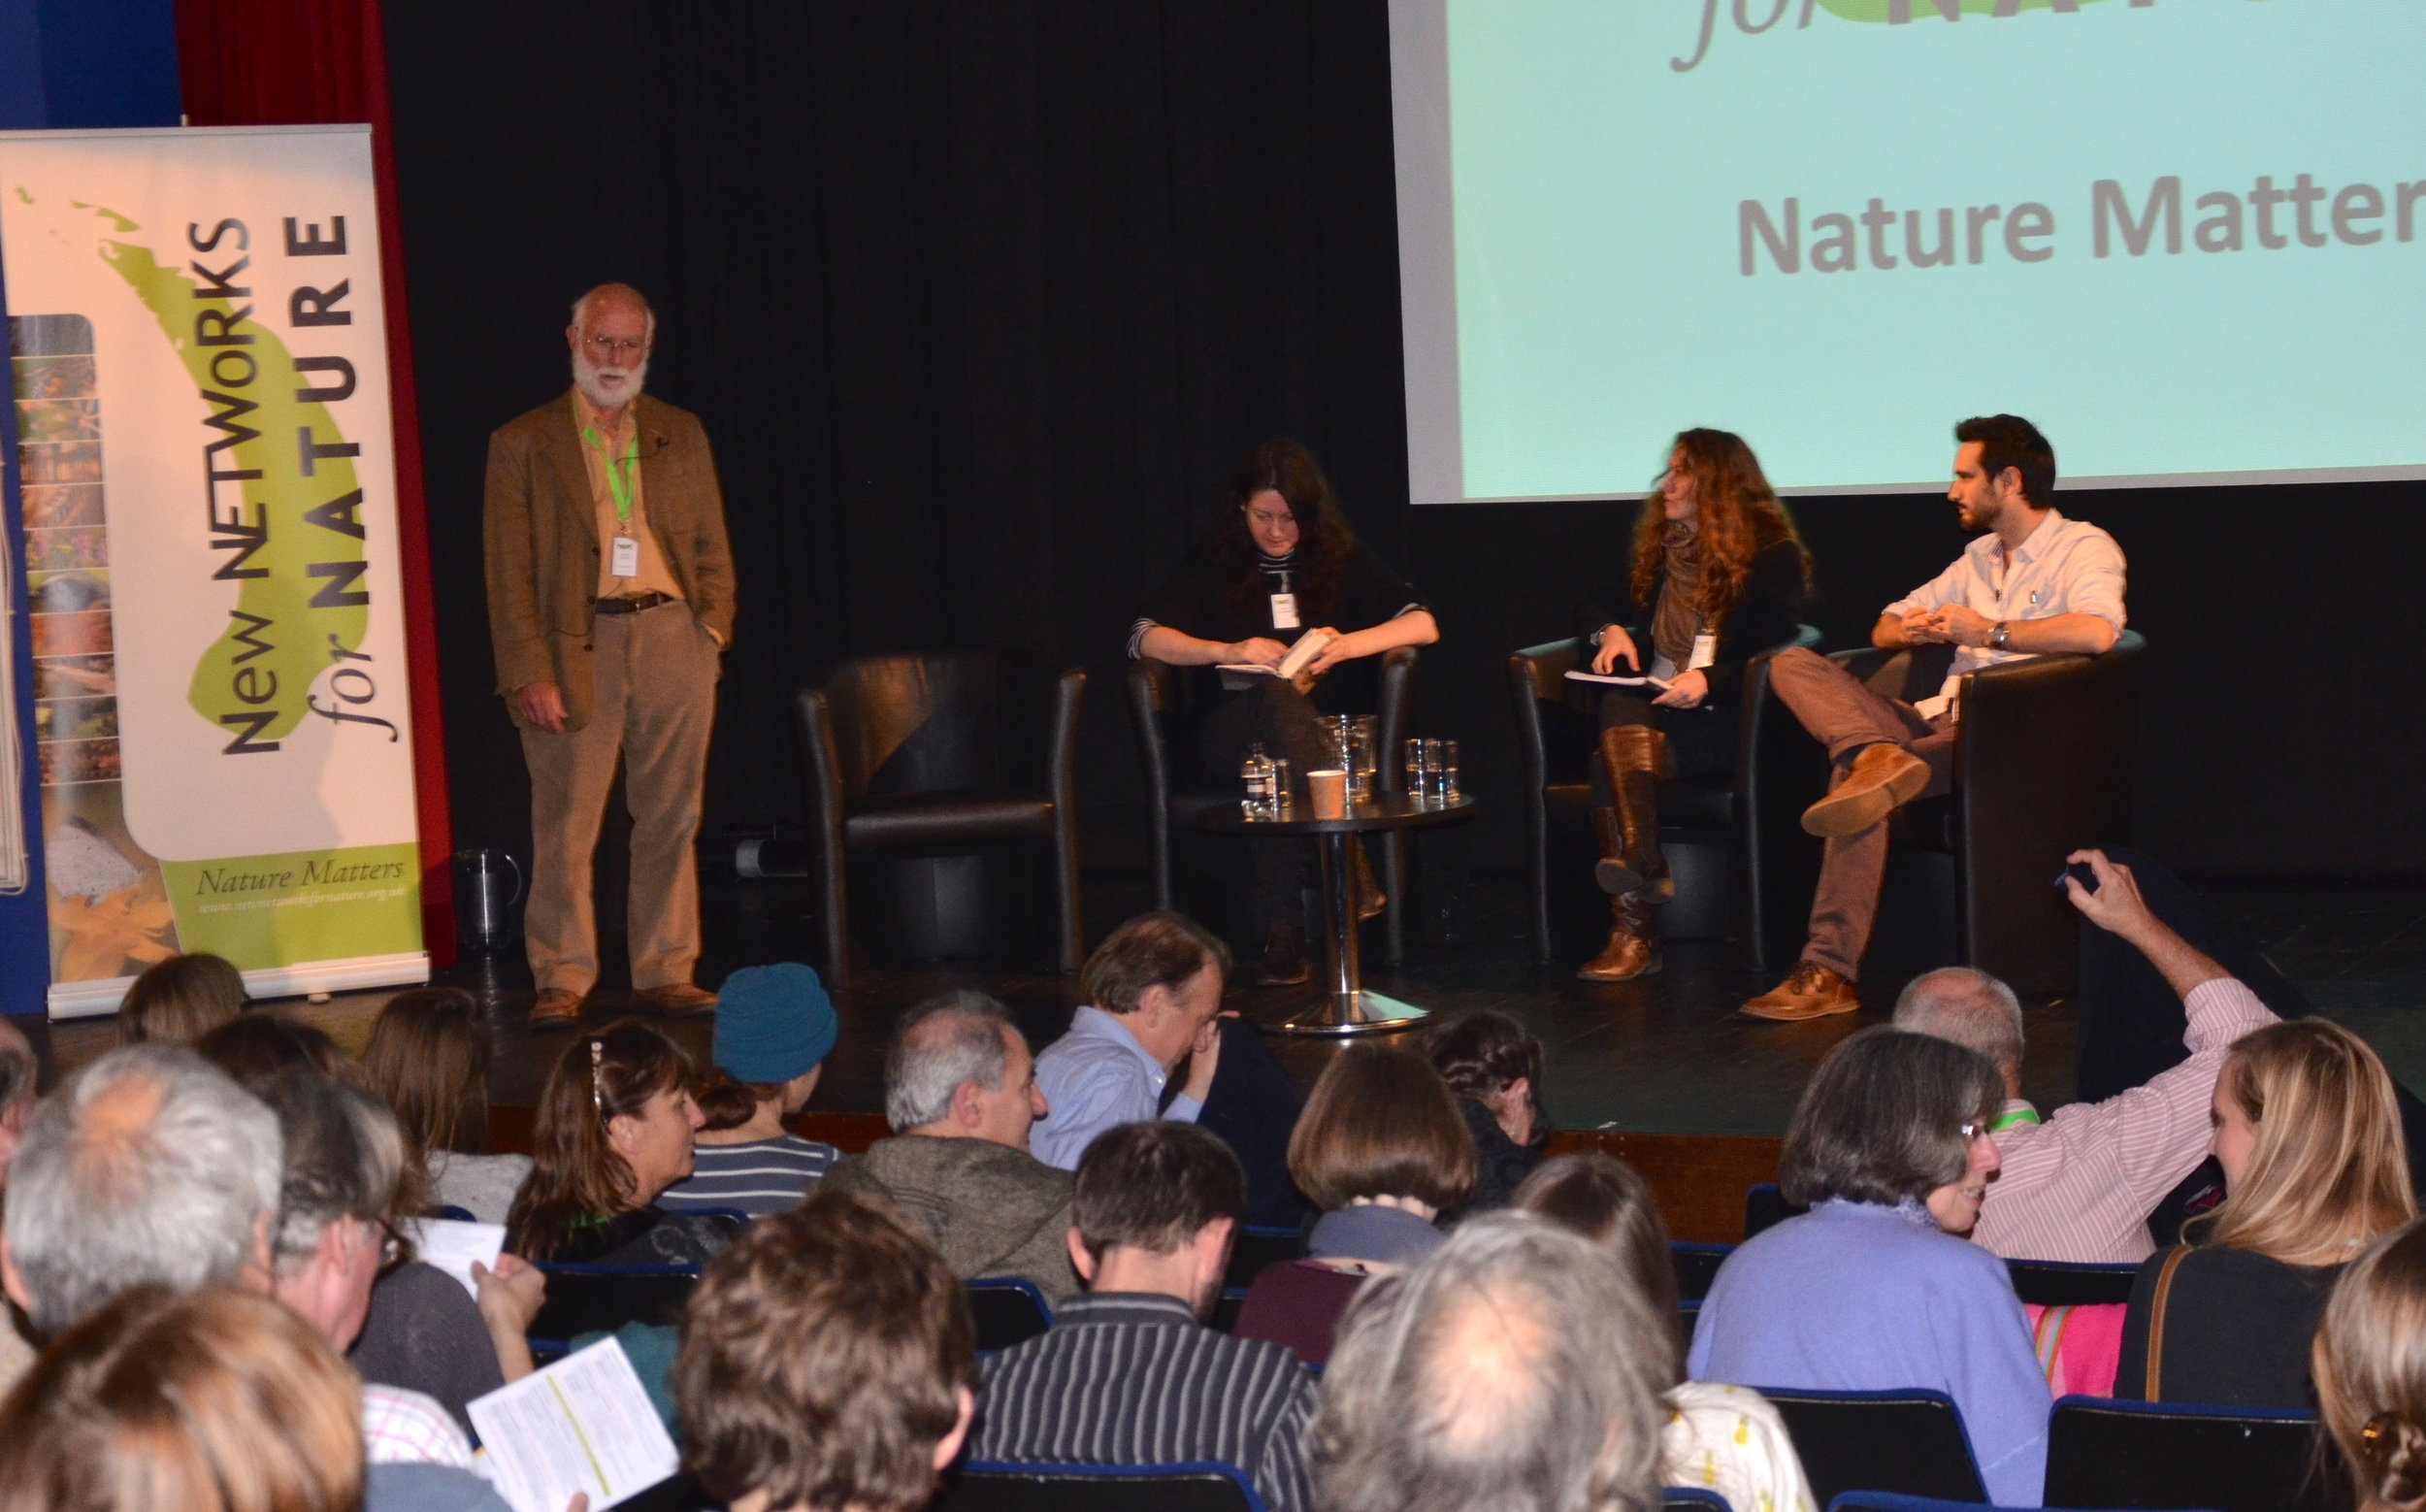 Jeremy Mynott introduces Helen Macdonald, Michelle Remblance and Michael Warren © Carry Akroyd